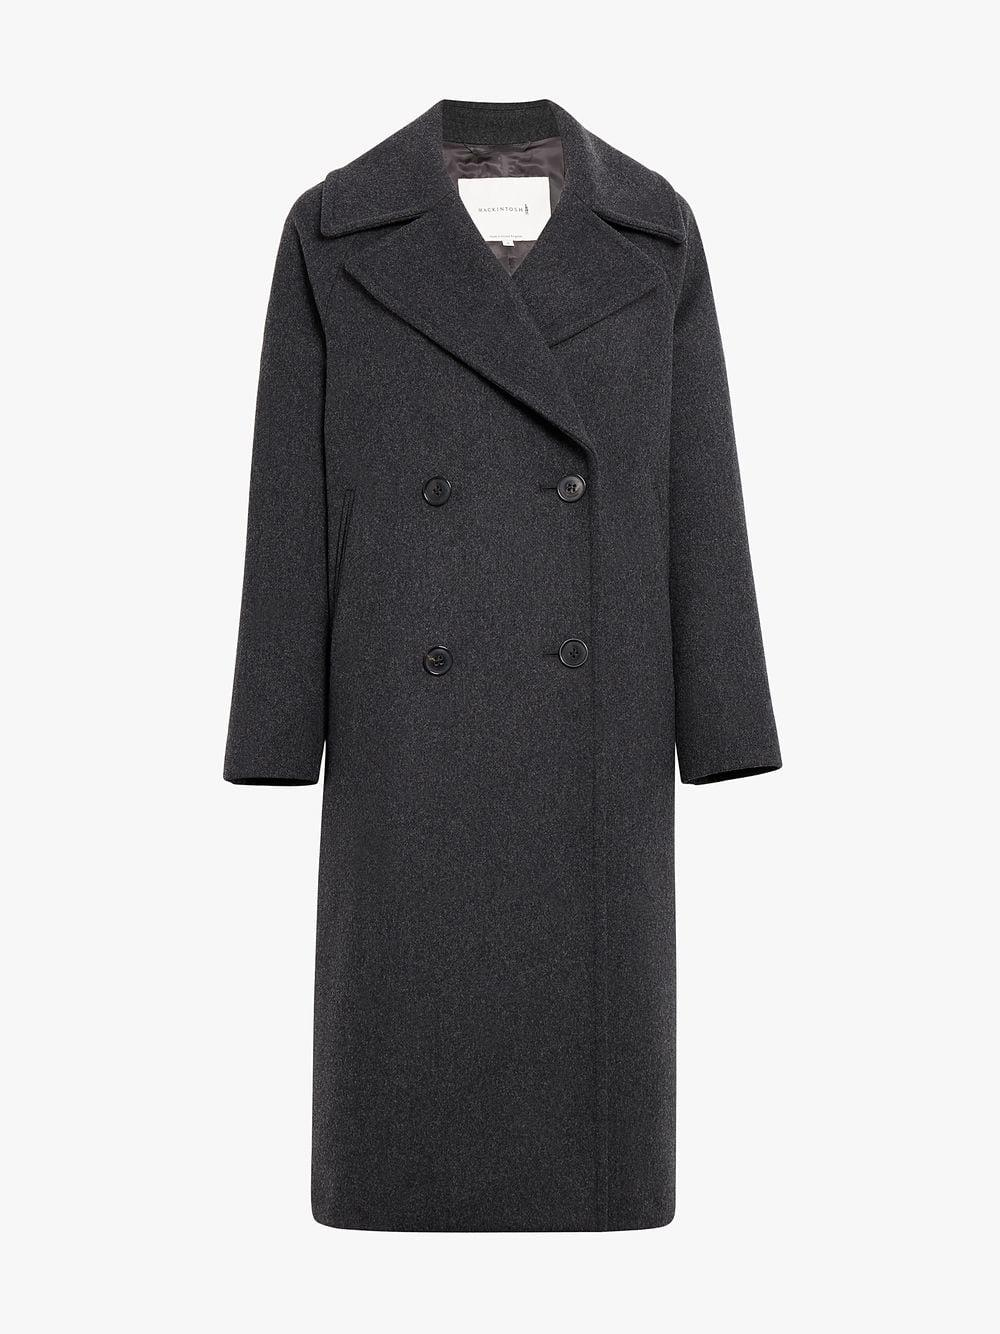 9c8639996 Mackintosh Charcoal Double Breasted Coat in Gray - Lyst